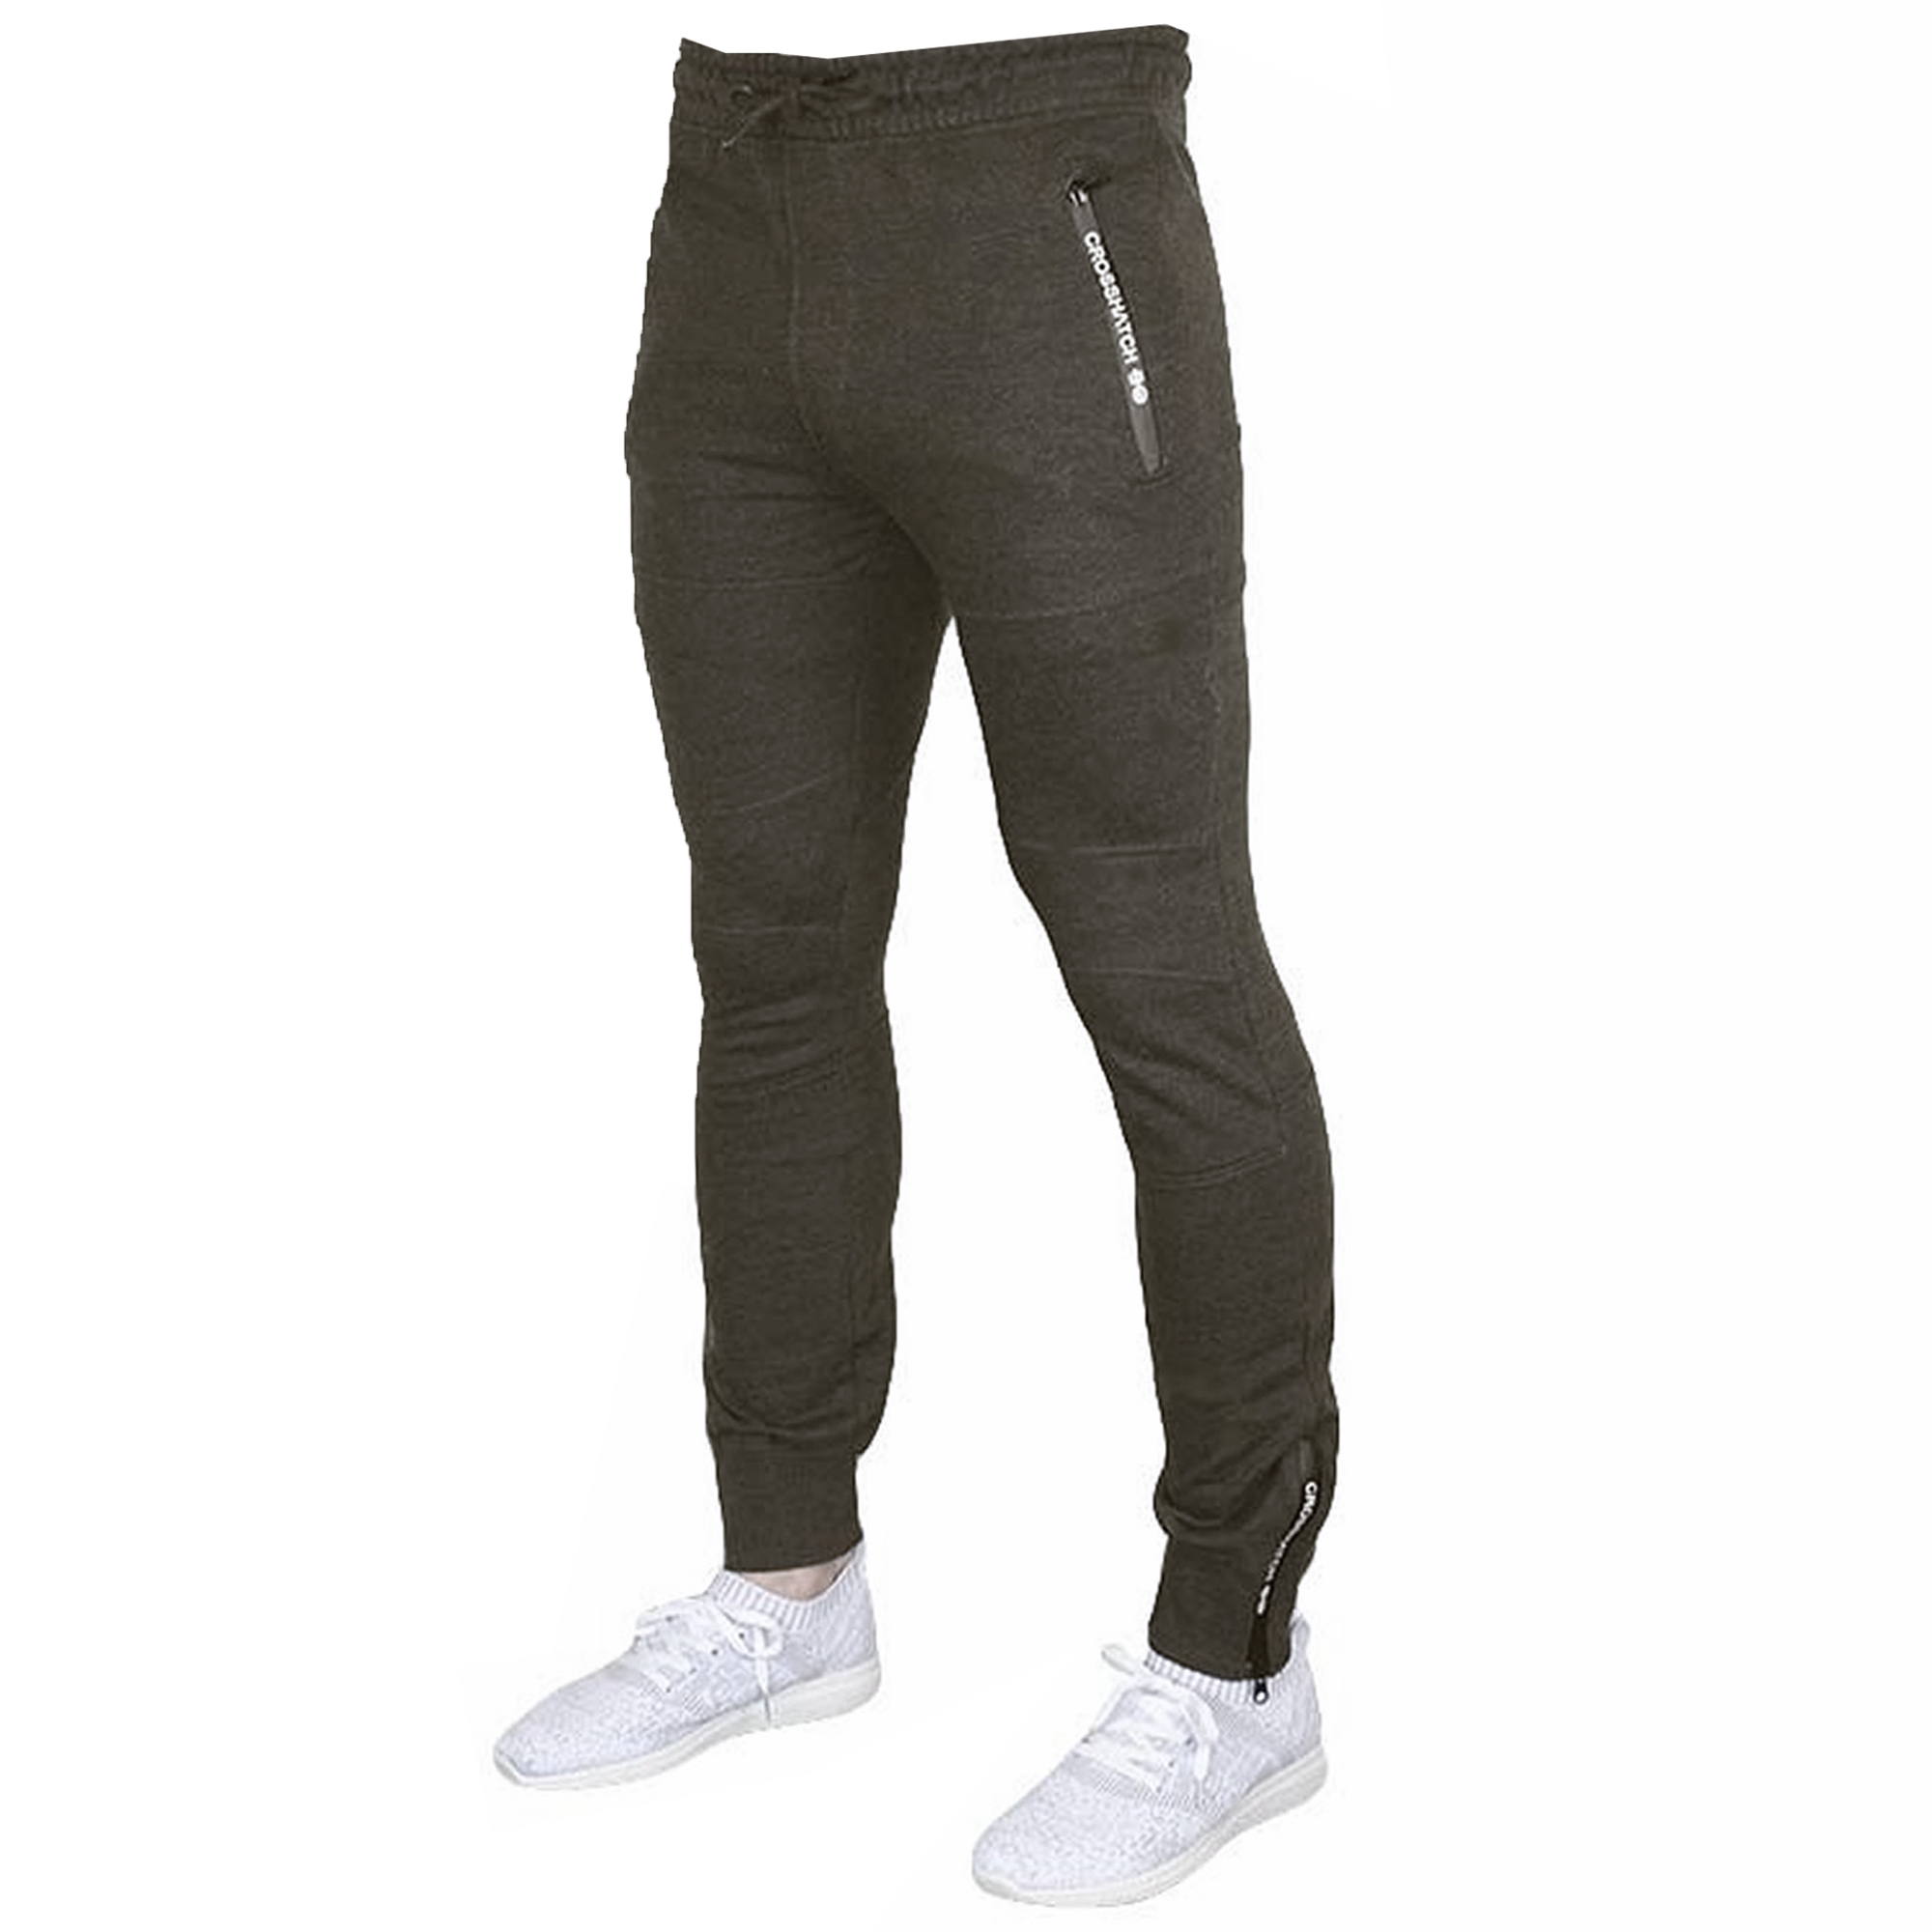 Mens-Bottoms-Crosshatch-Jogging-Pants-Cuffed-Trousers-Running-Gym-Warm-Fashion thumbnail 4